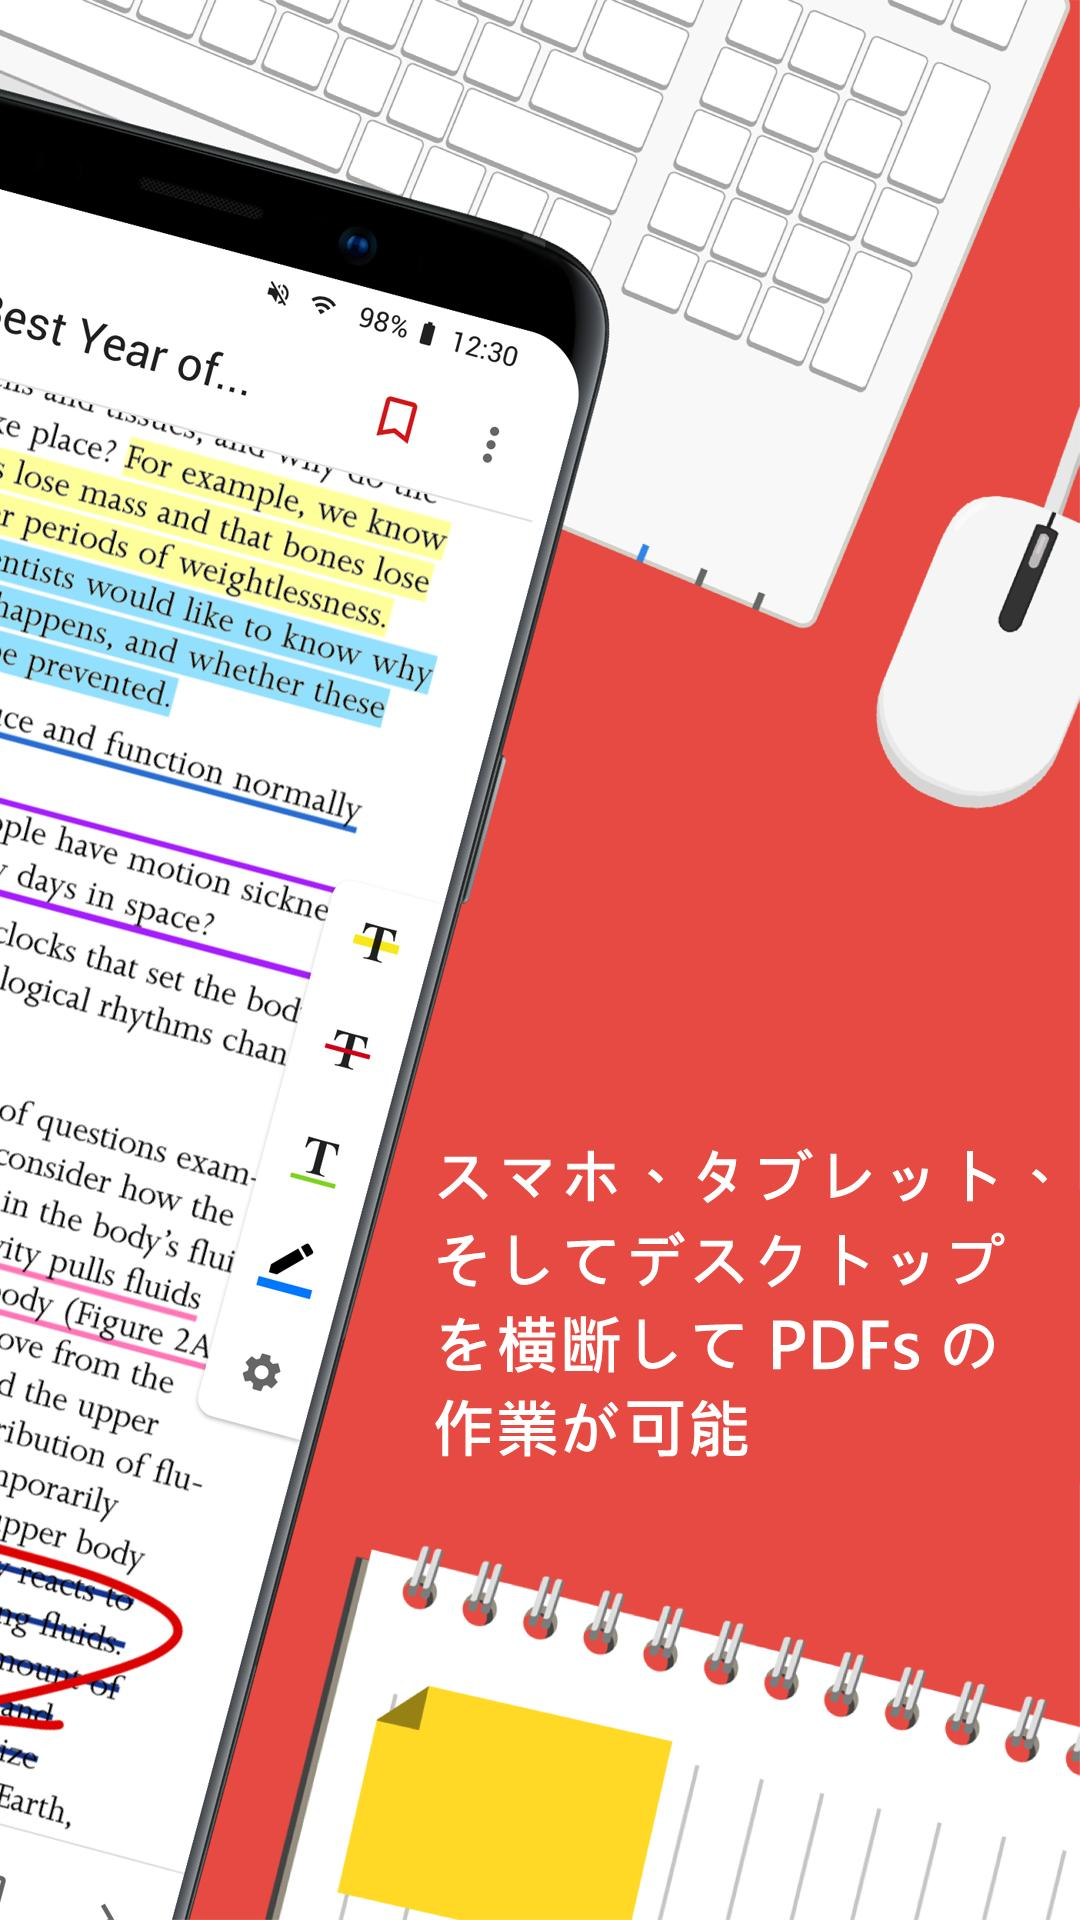 pdf 結合 android無料アプリ